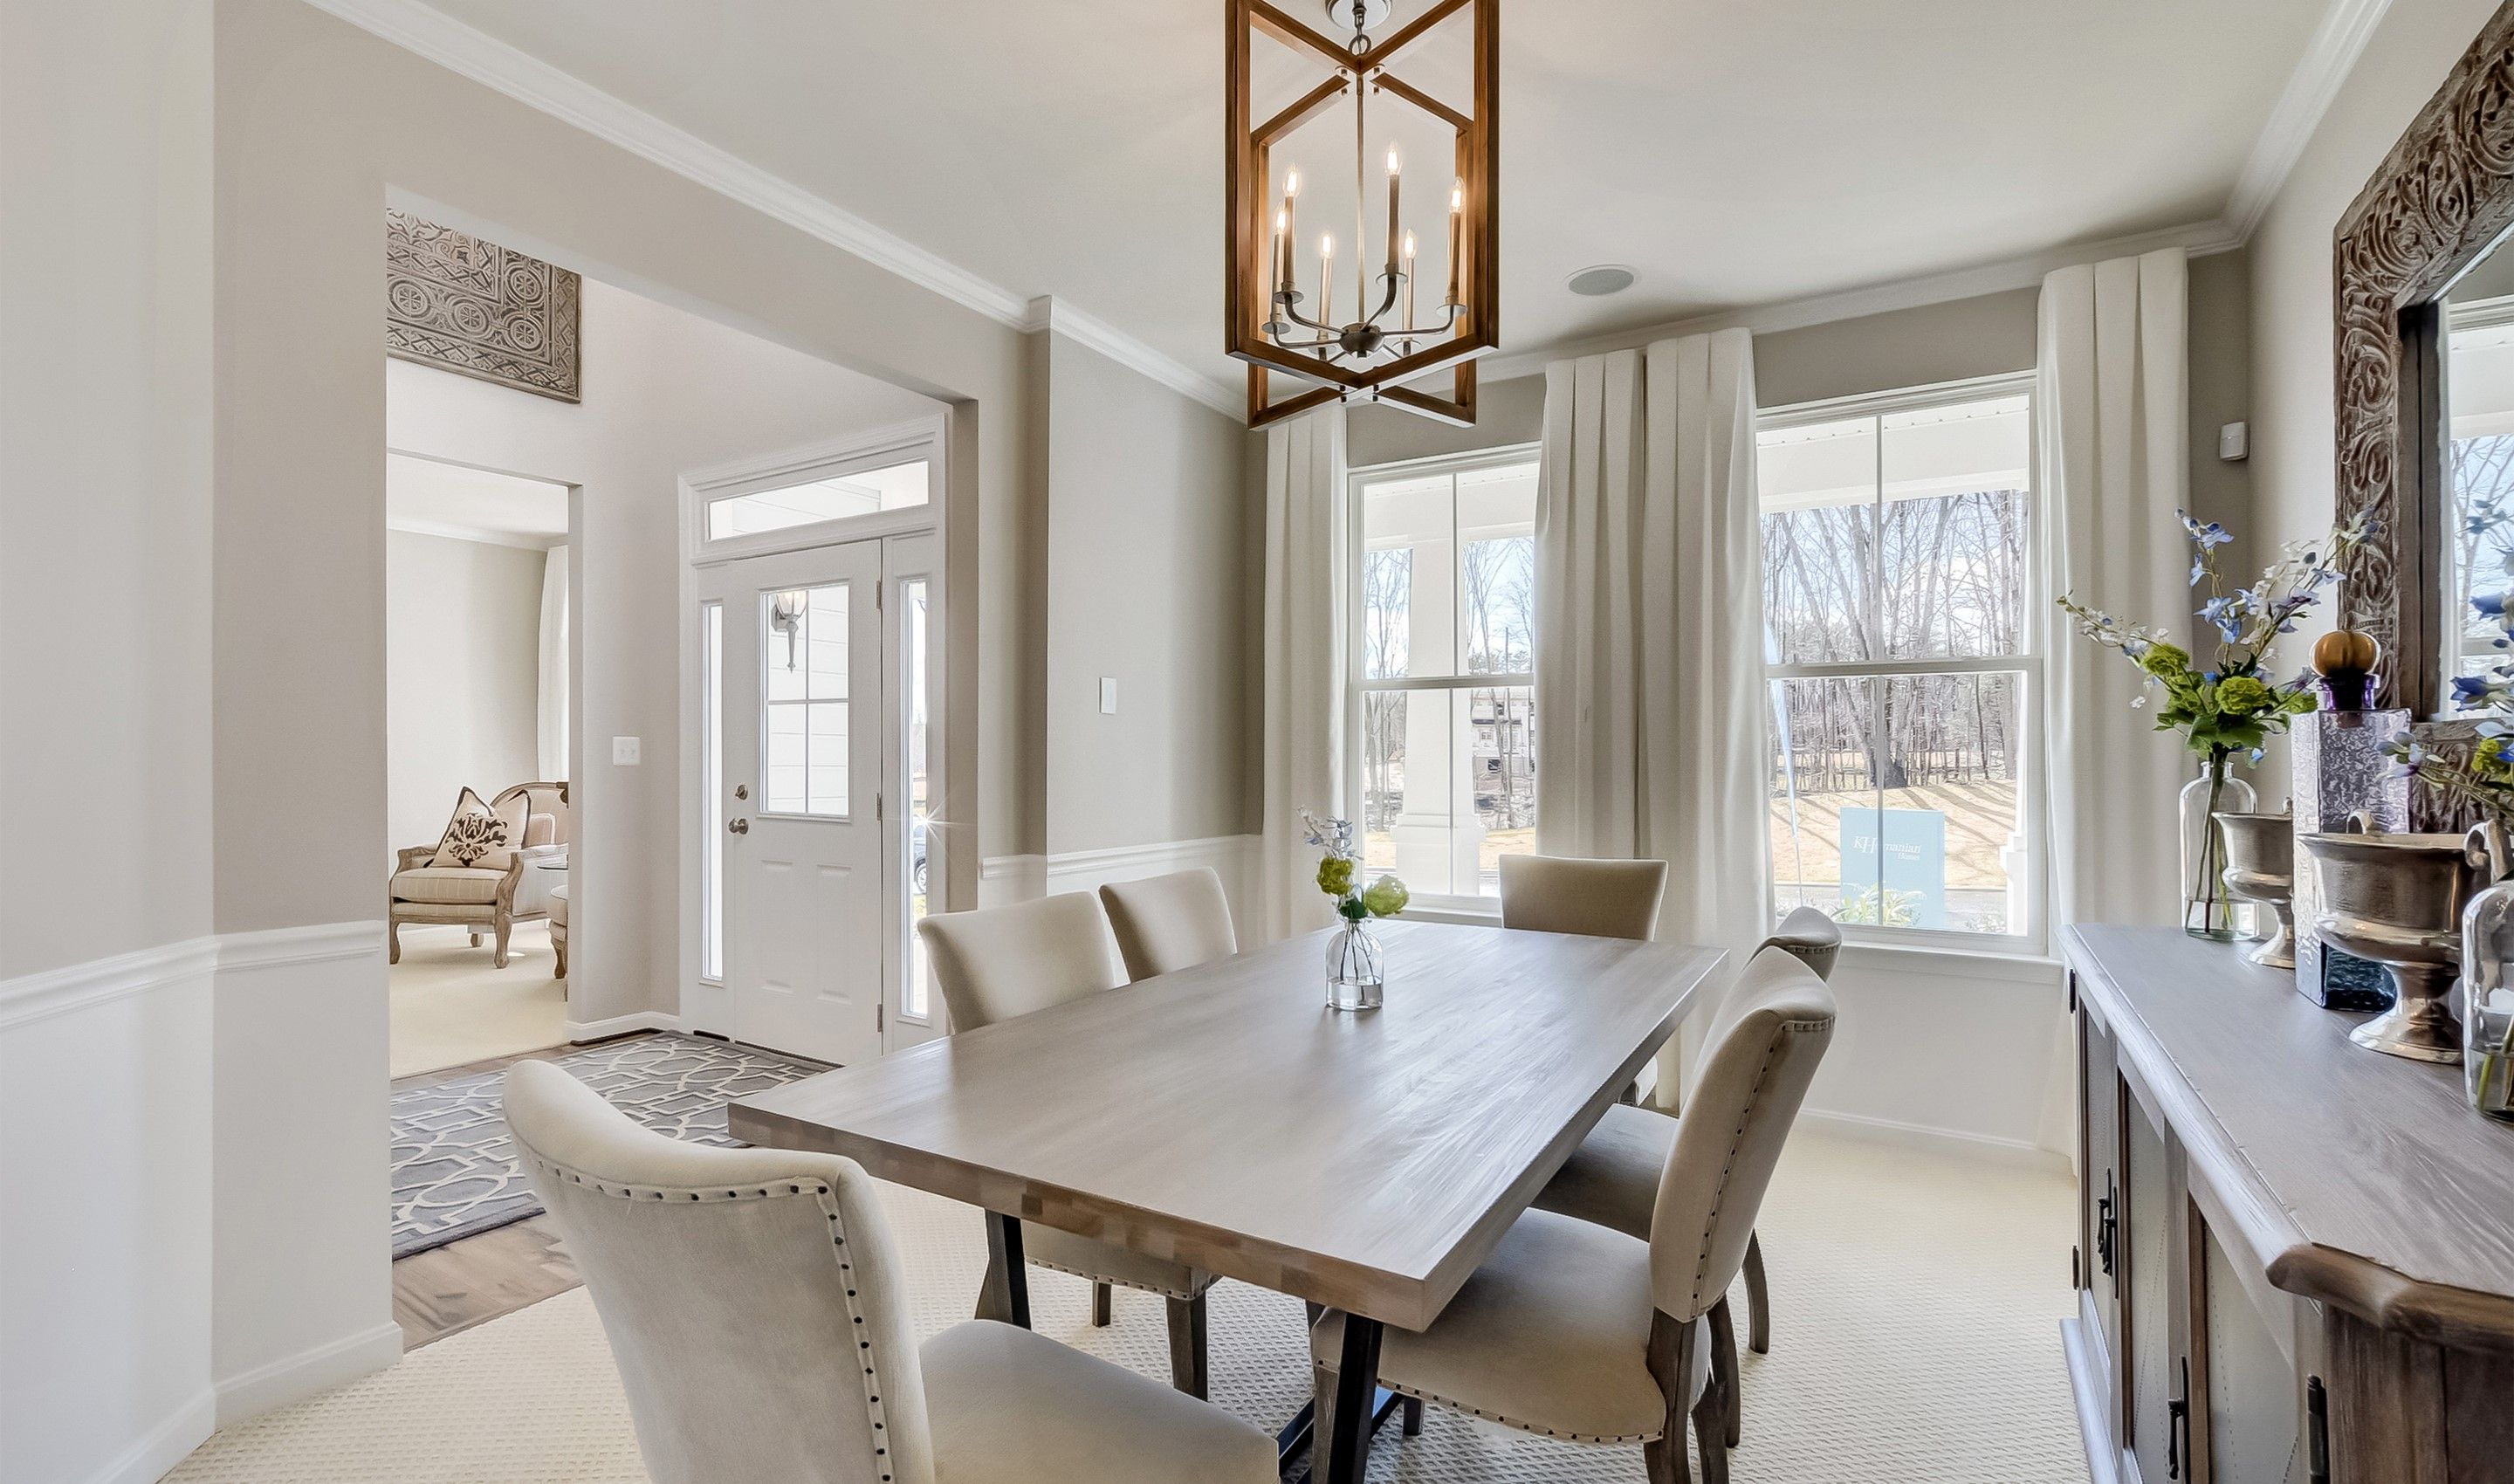 Living Area featured in the Alaska II By K. Hovnanian® Homes in Washington, VA